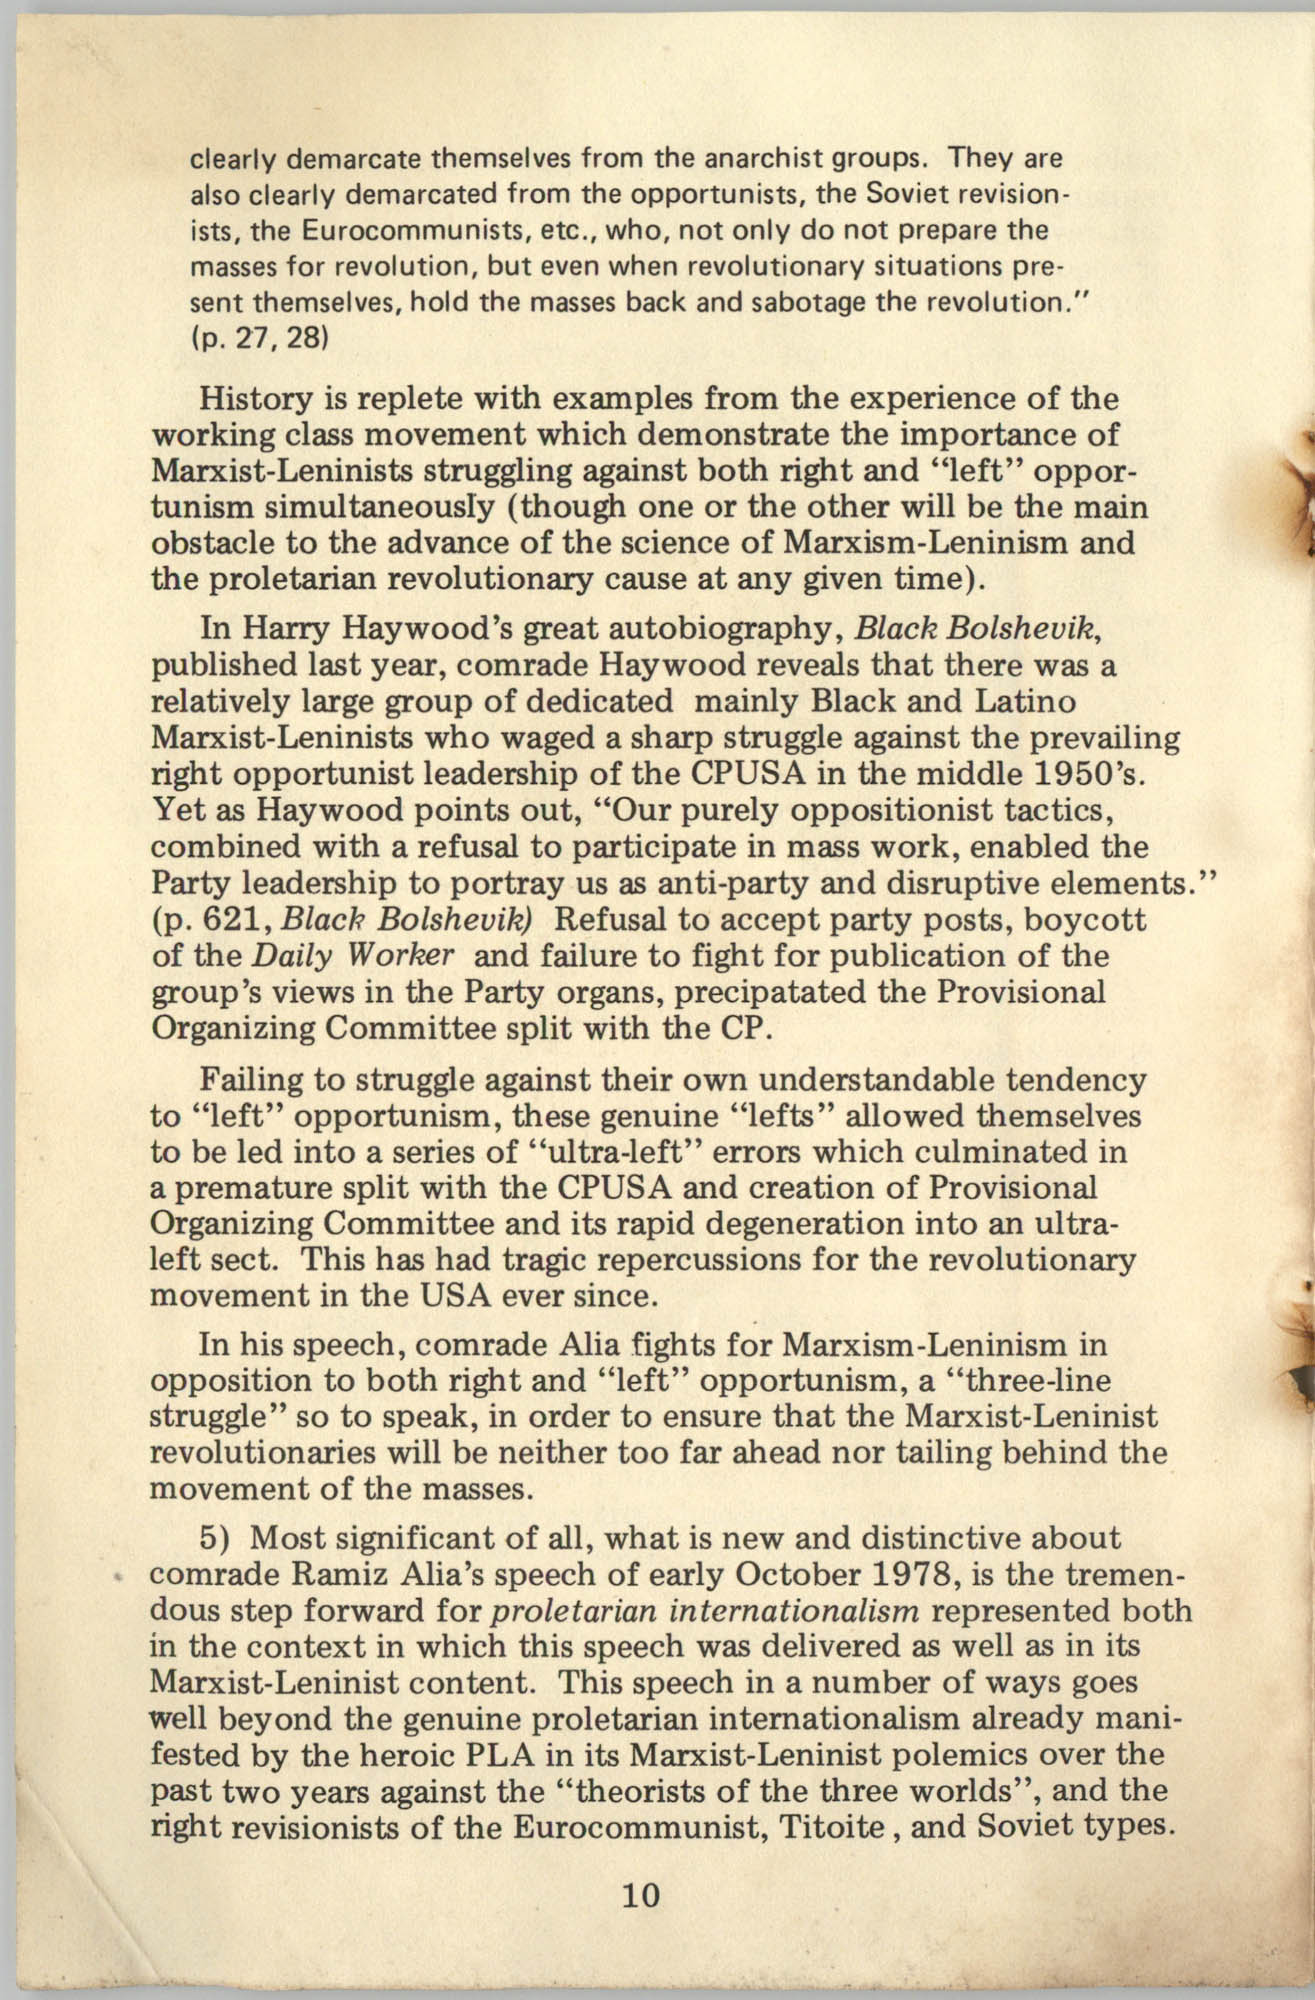 Ray O. Light Newsletter, Volume 1, Number 3, Page 10